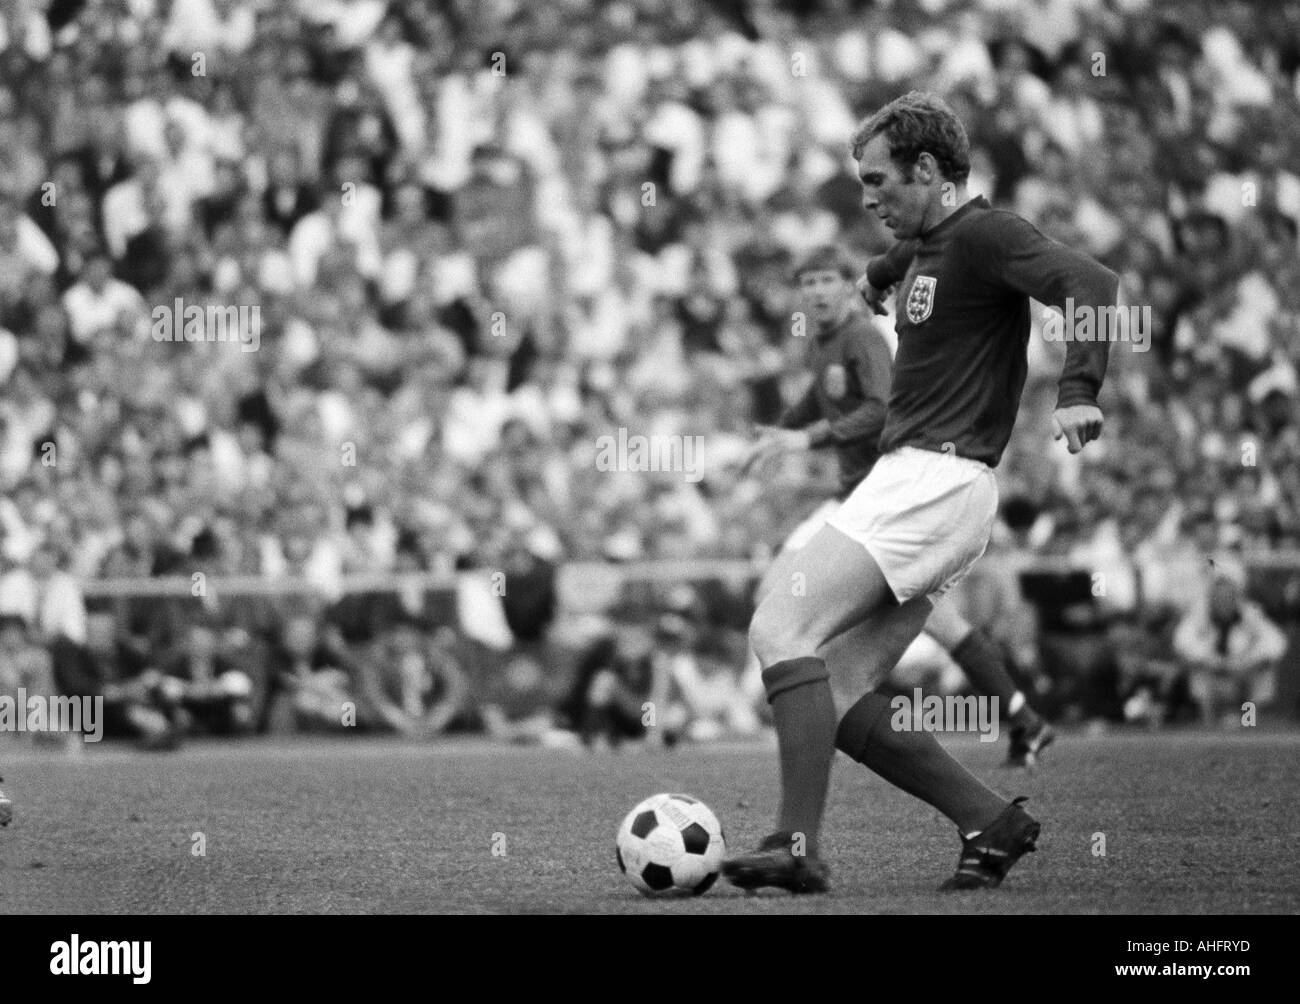 football, international match, 1968, Niedersachsen Stadium in Hanover, Germany versus England 1:0, scene of the match, Bobby Moore (England) in ball possession - Stock Image